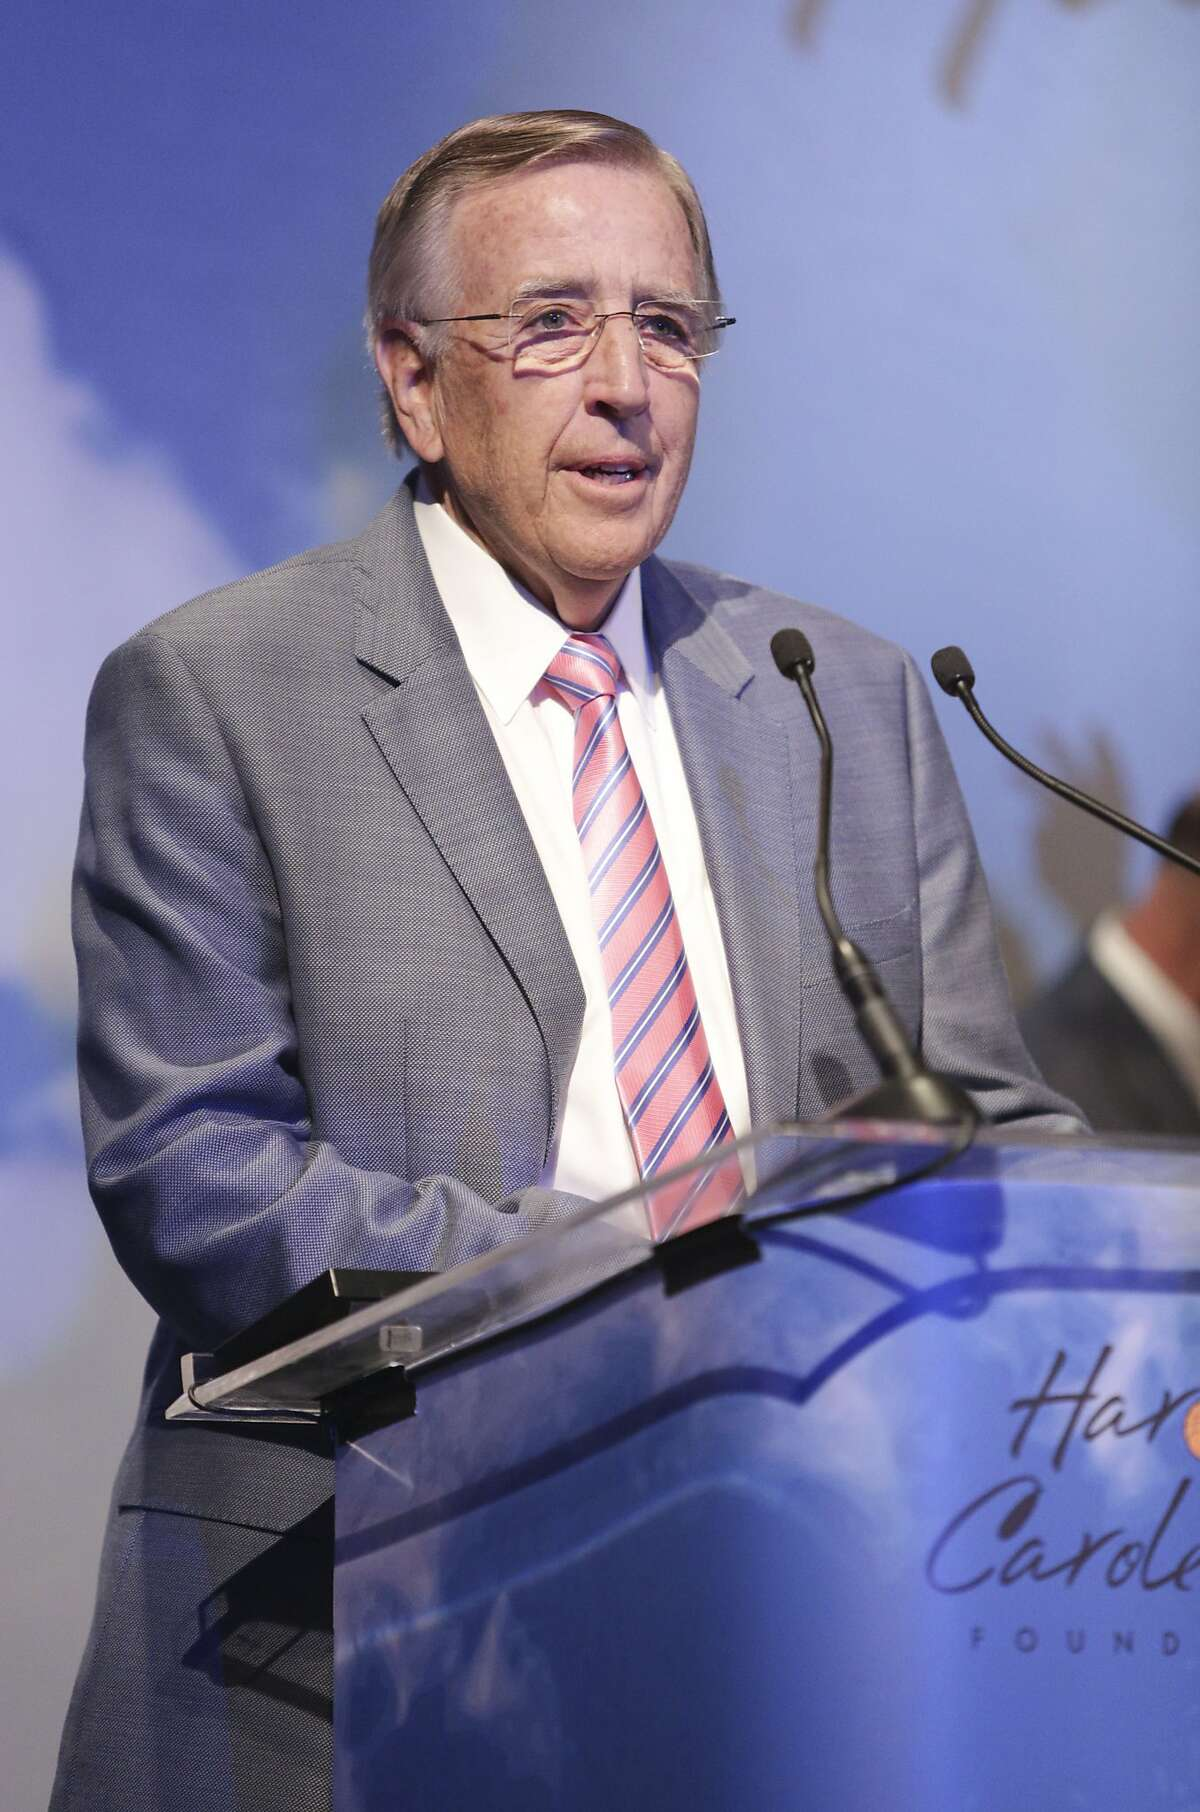 LOS ANGELES, CA - AUGUST 08: Sportscaster Brent Musburger speaks at the 14th Annual Harold & Carole Pump Foundation Event on August 8, 2014 in Los Angeles, California. (Photo by Tiffany Rose/WireImage)